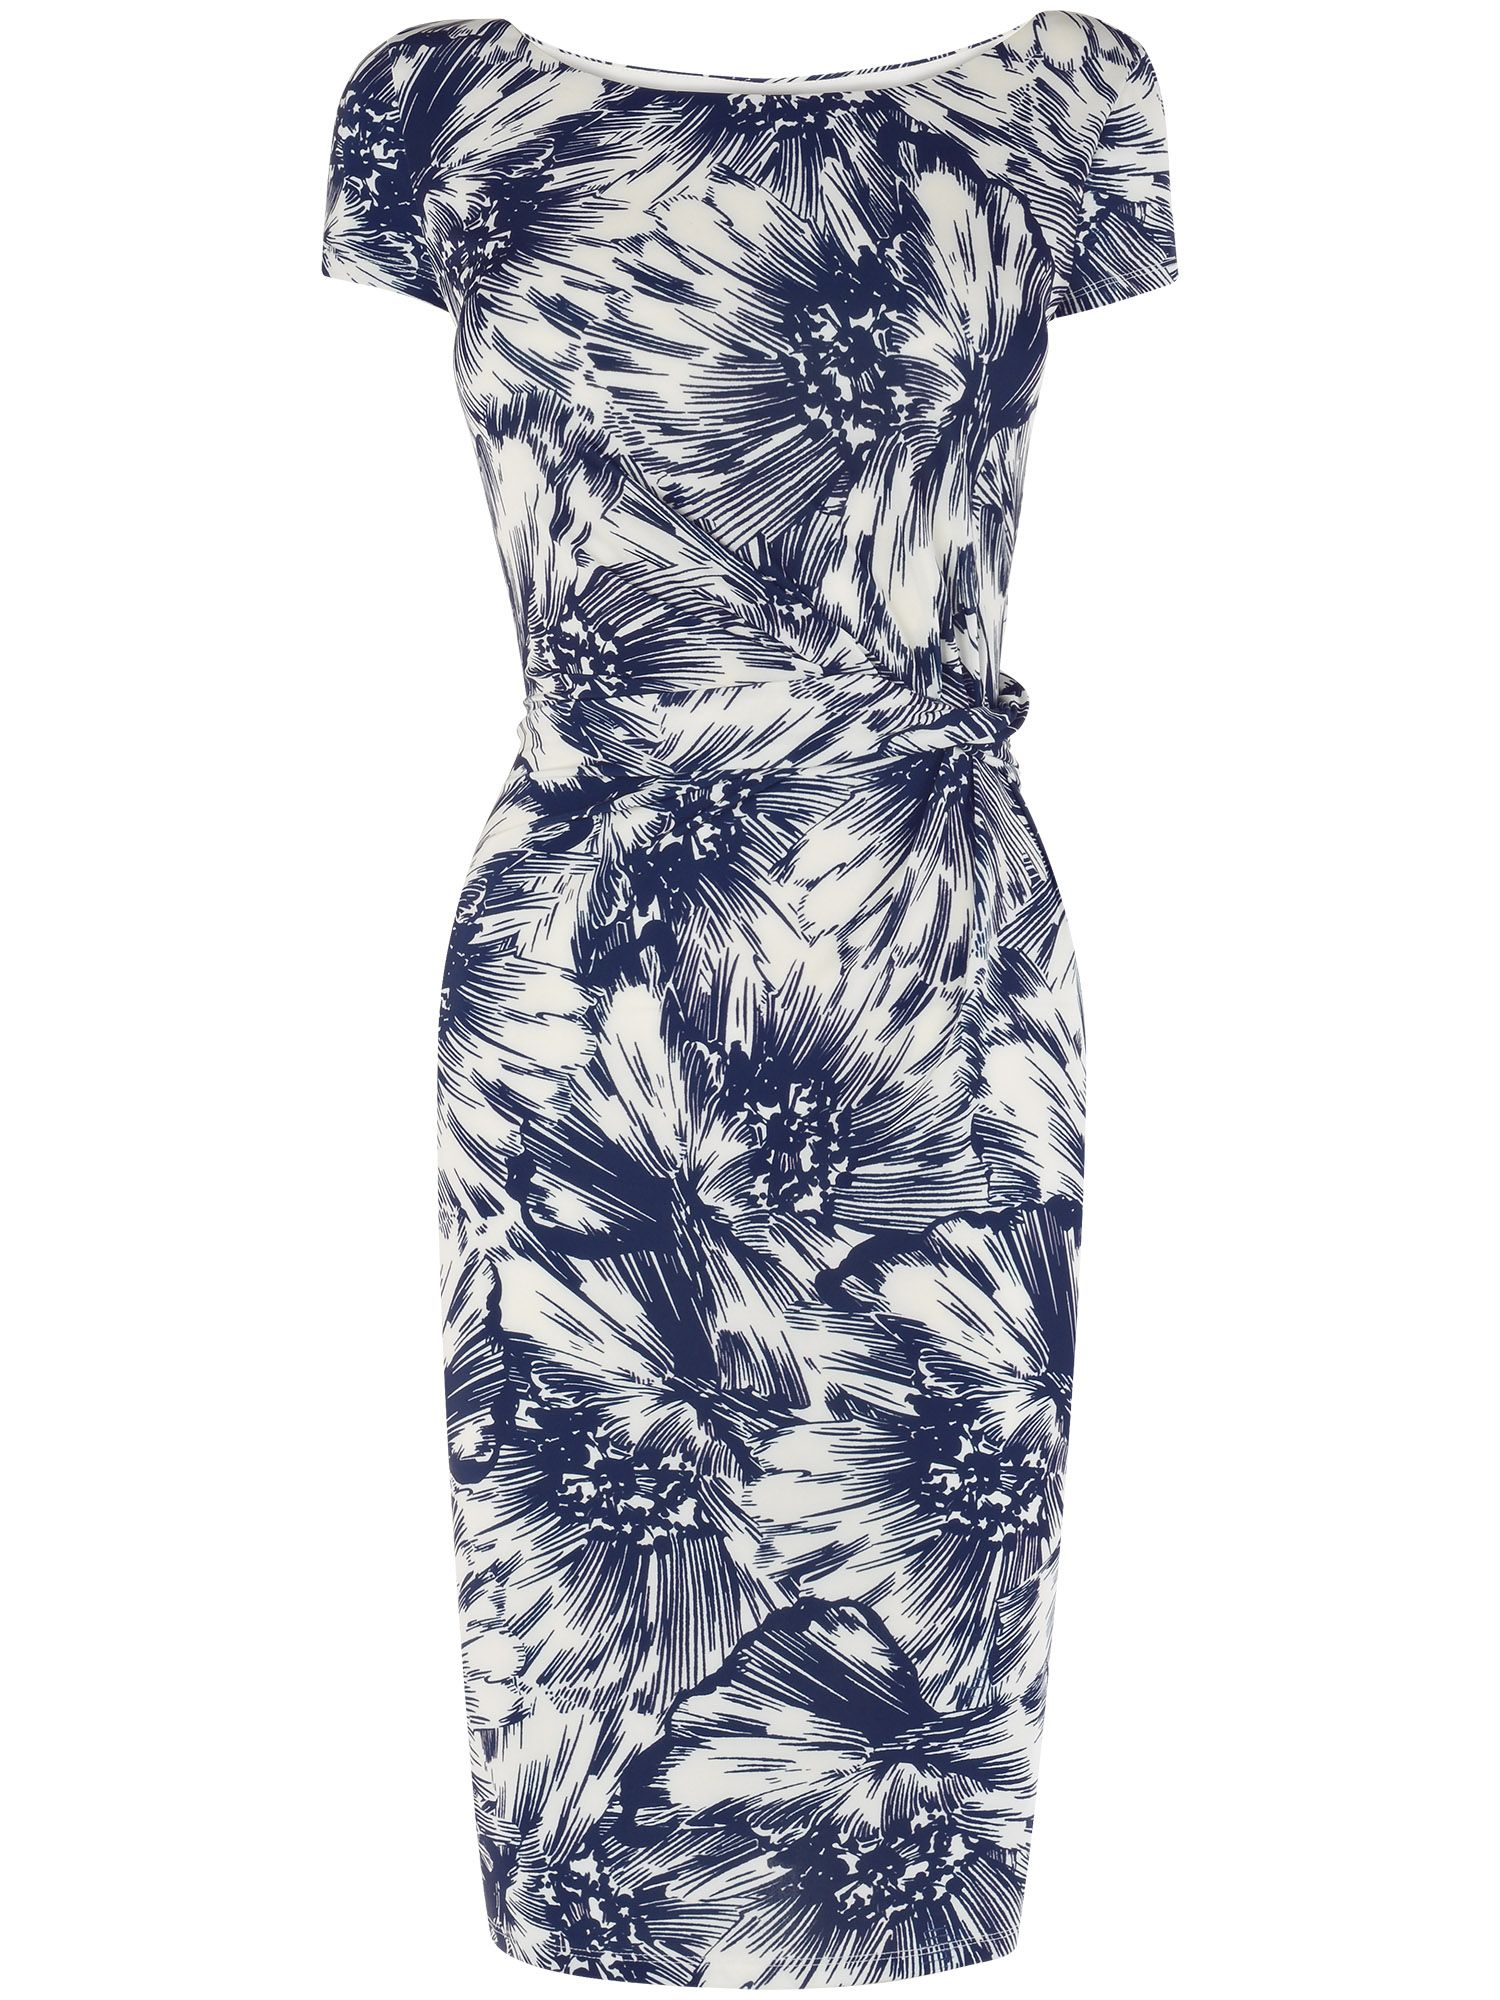 Nicky printed dress